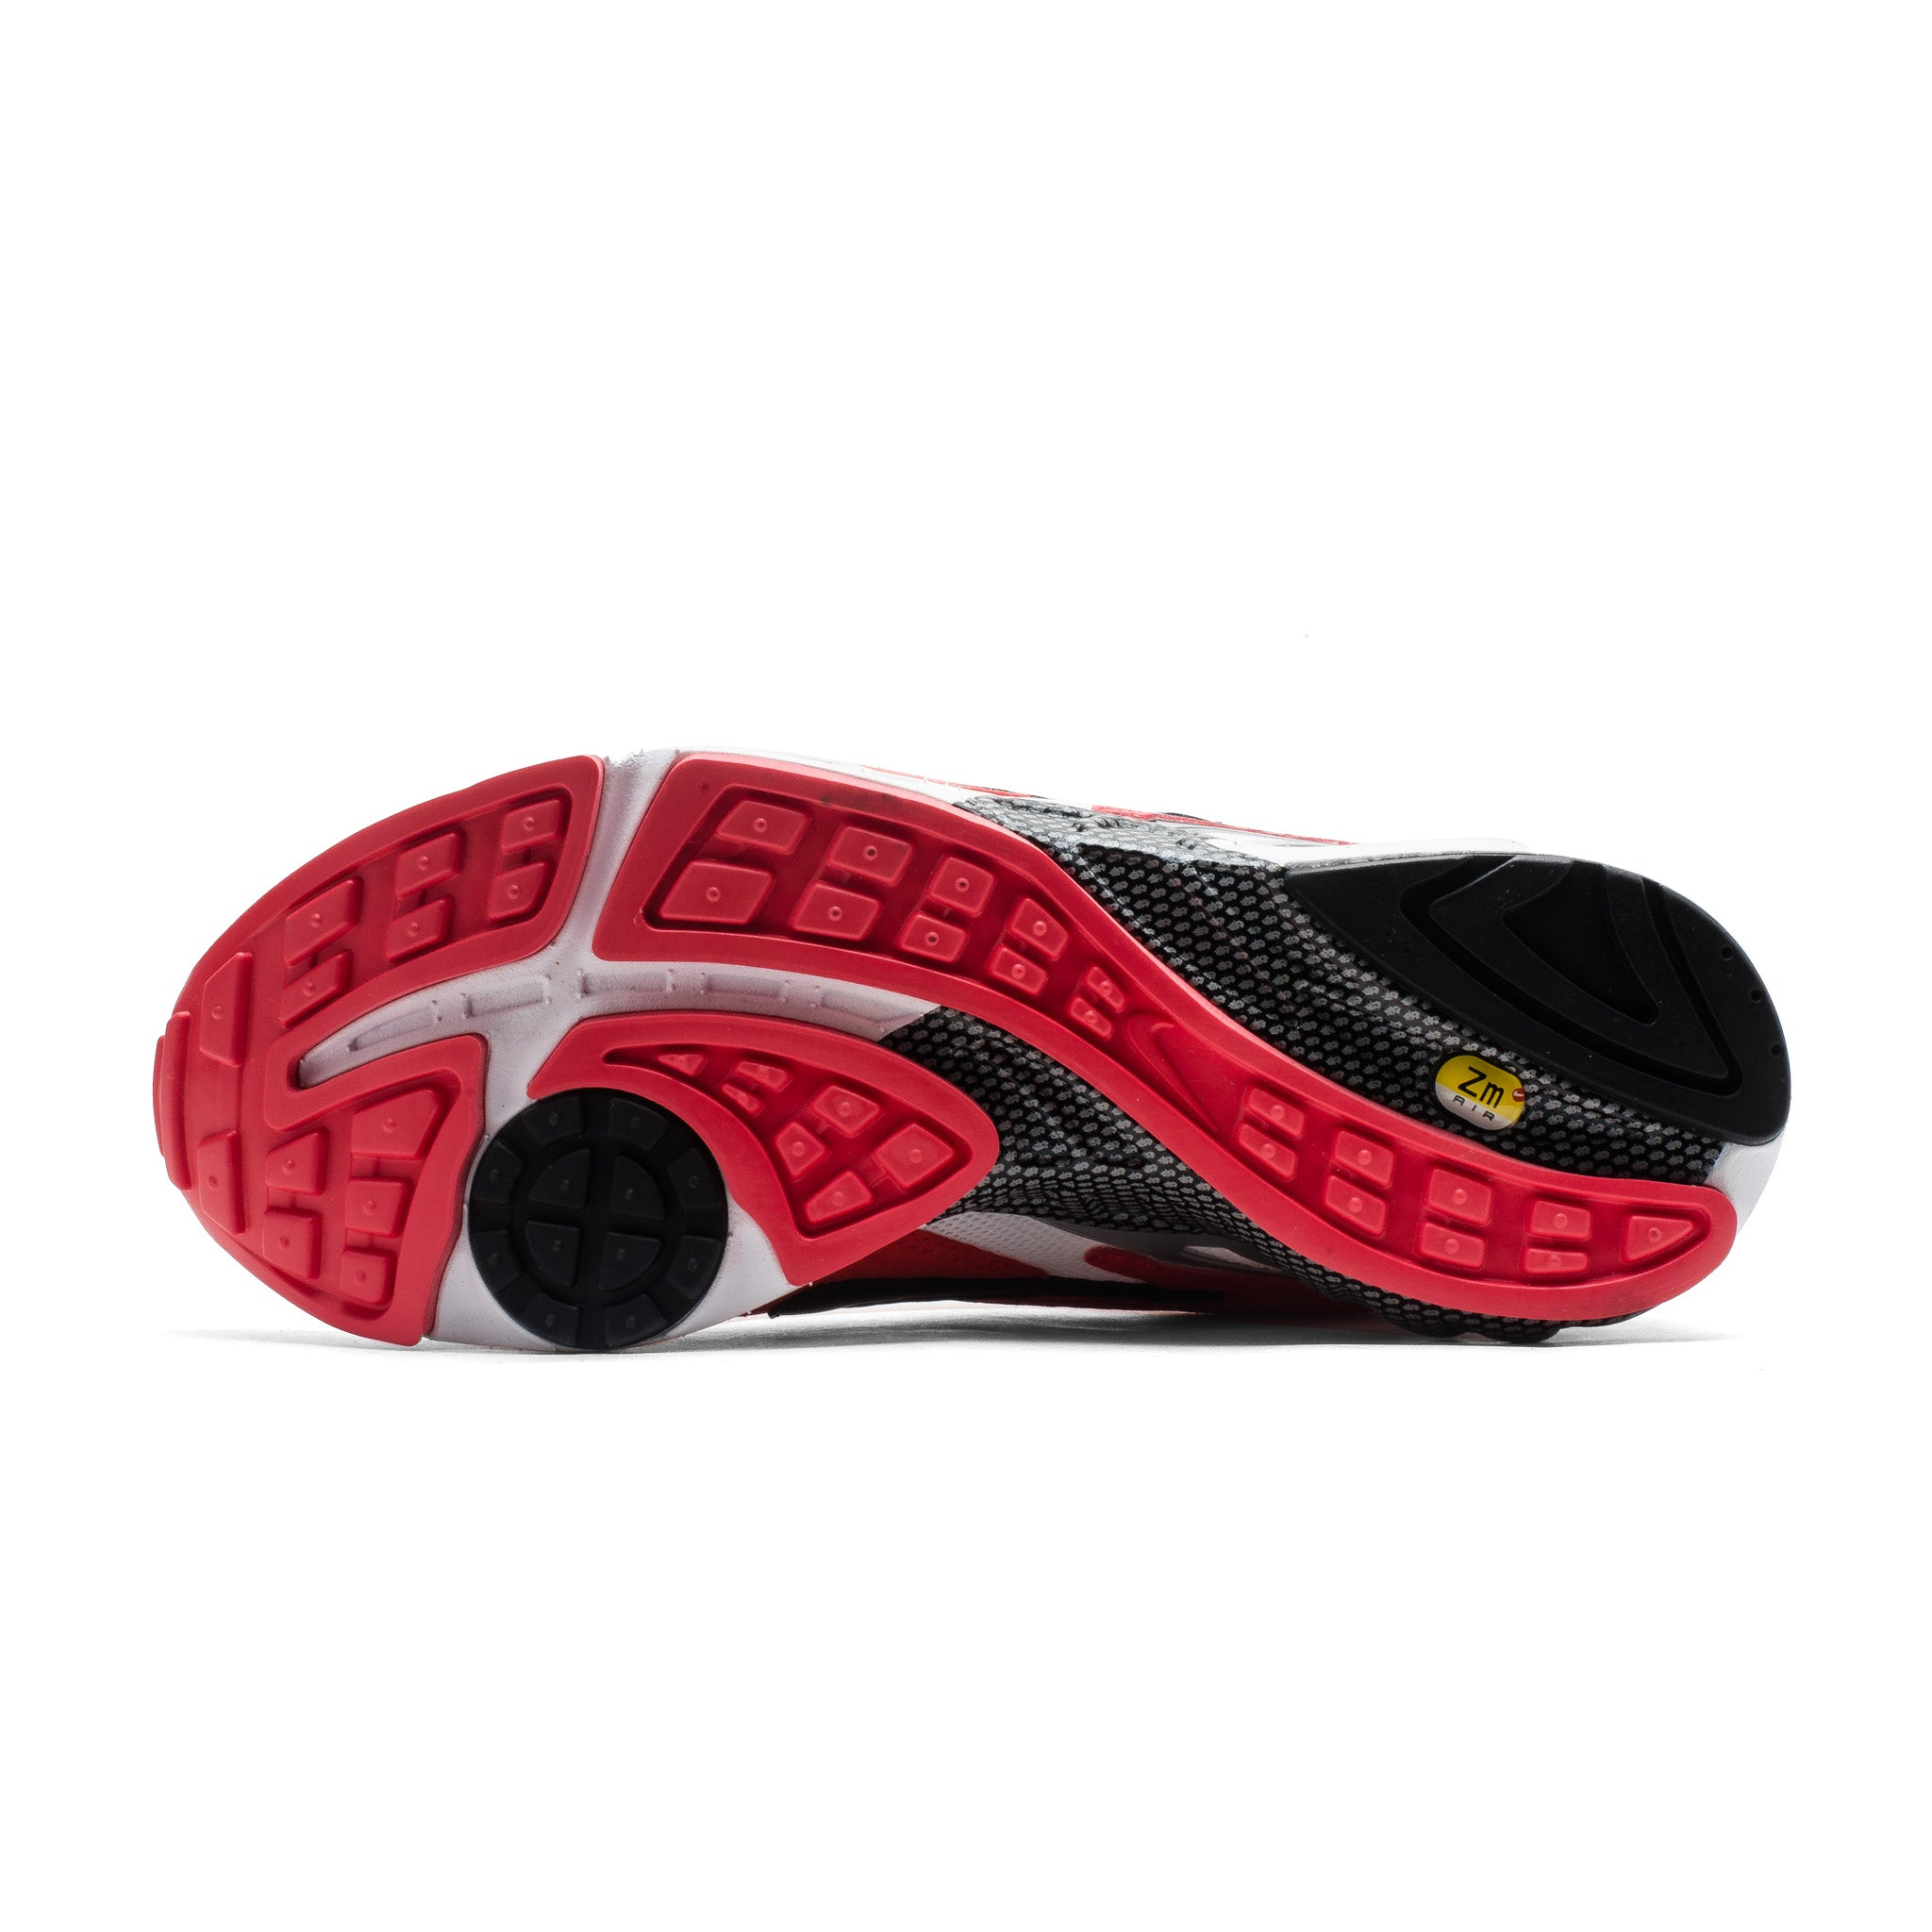 Air Ghost Racer AT5410-601 Red